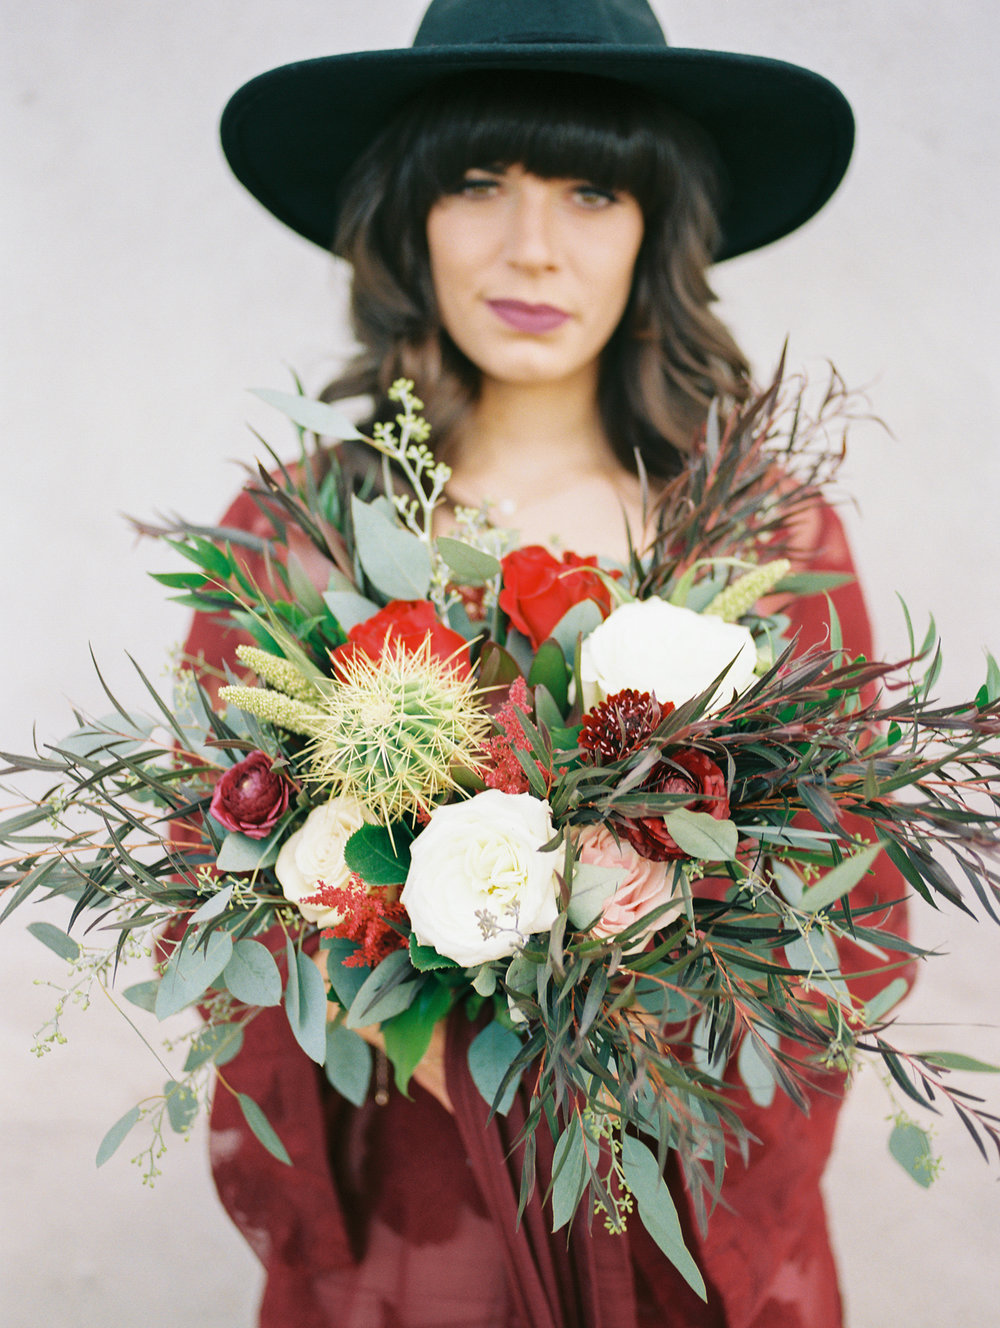 hipster bride wearing hat on her wedding day holding a desert bouquet